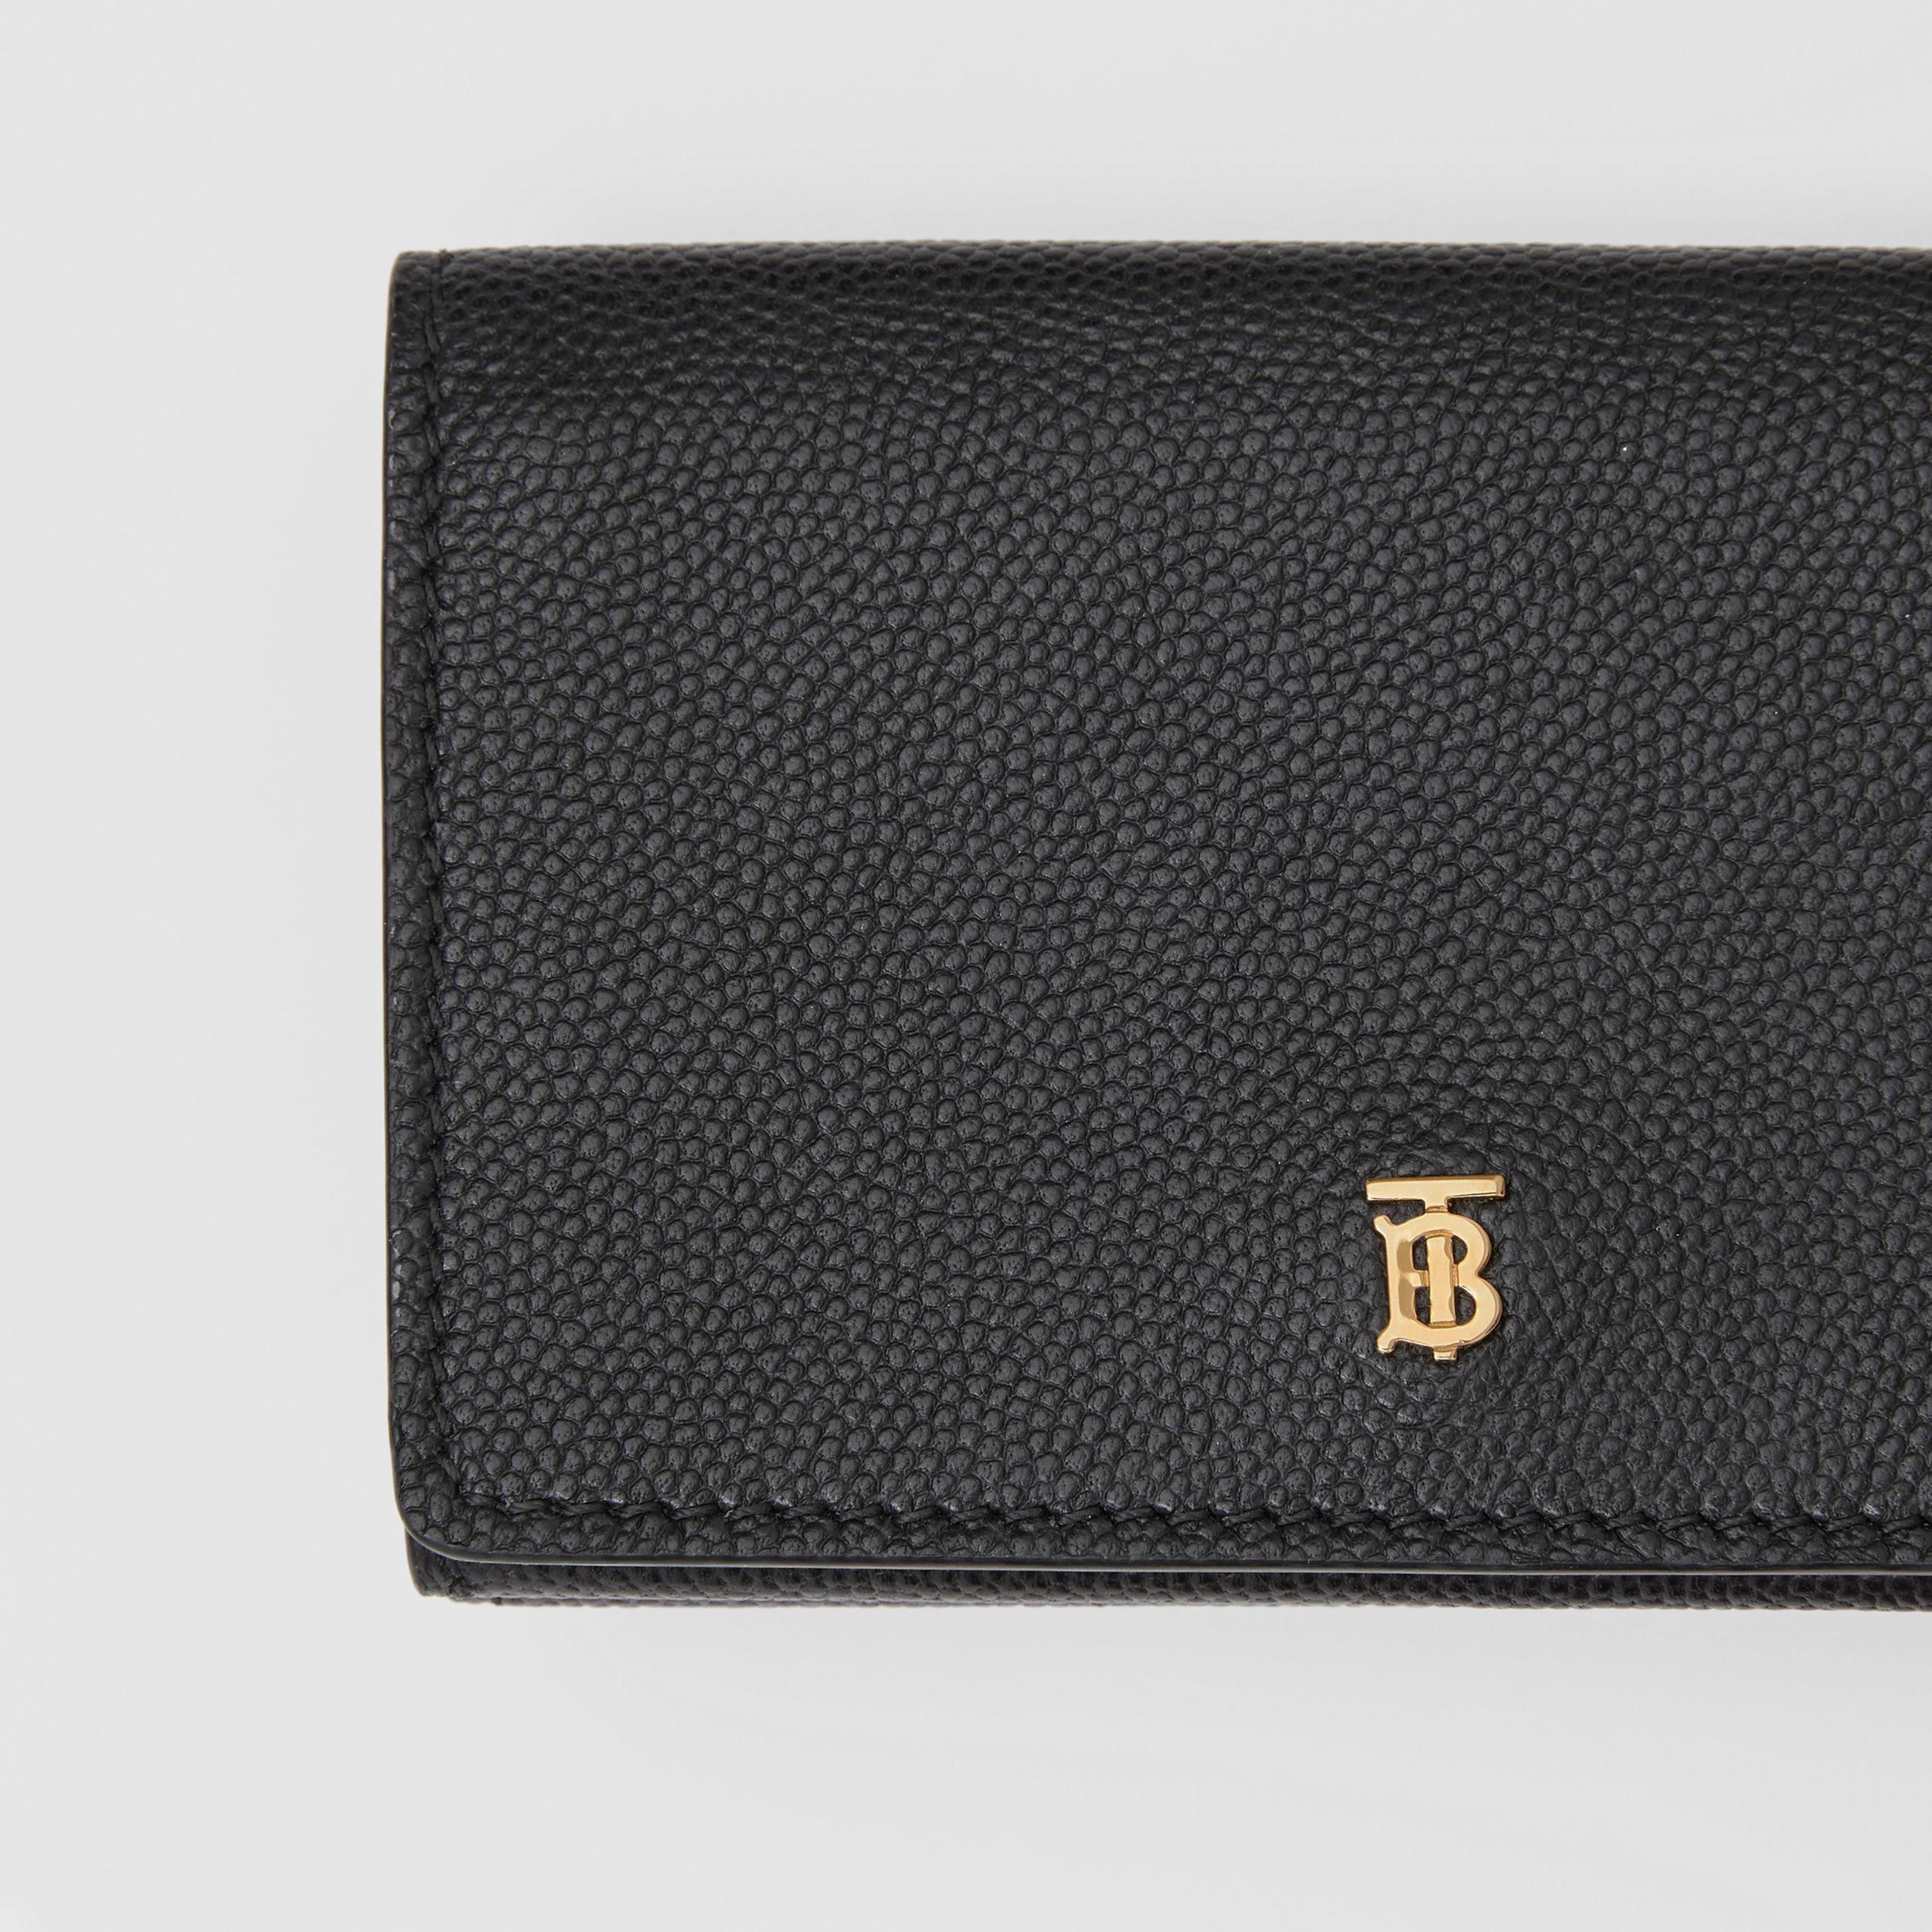 Small Grainy Leather Folding Wallet in Black - Women | Burberry - 2